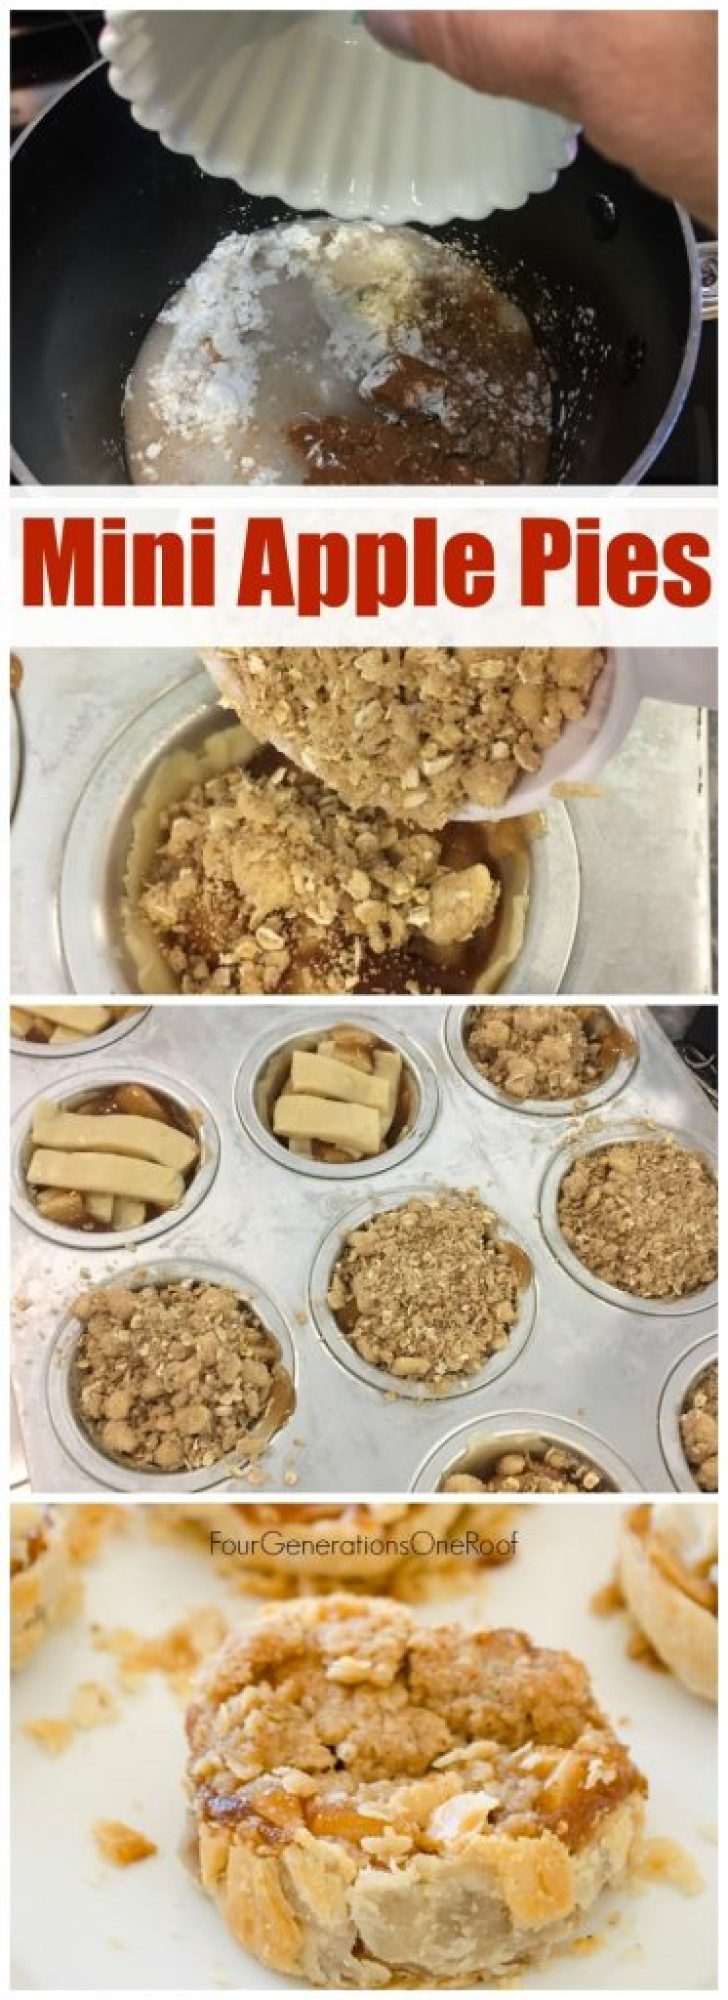 Mini Apple Pie + Mini Apple Crispt Recipe